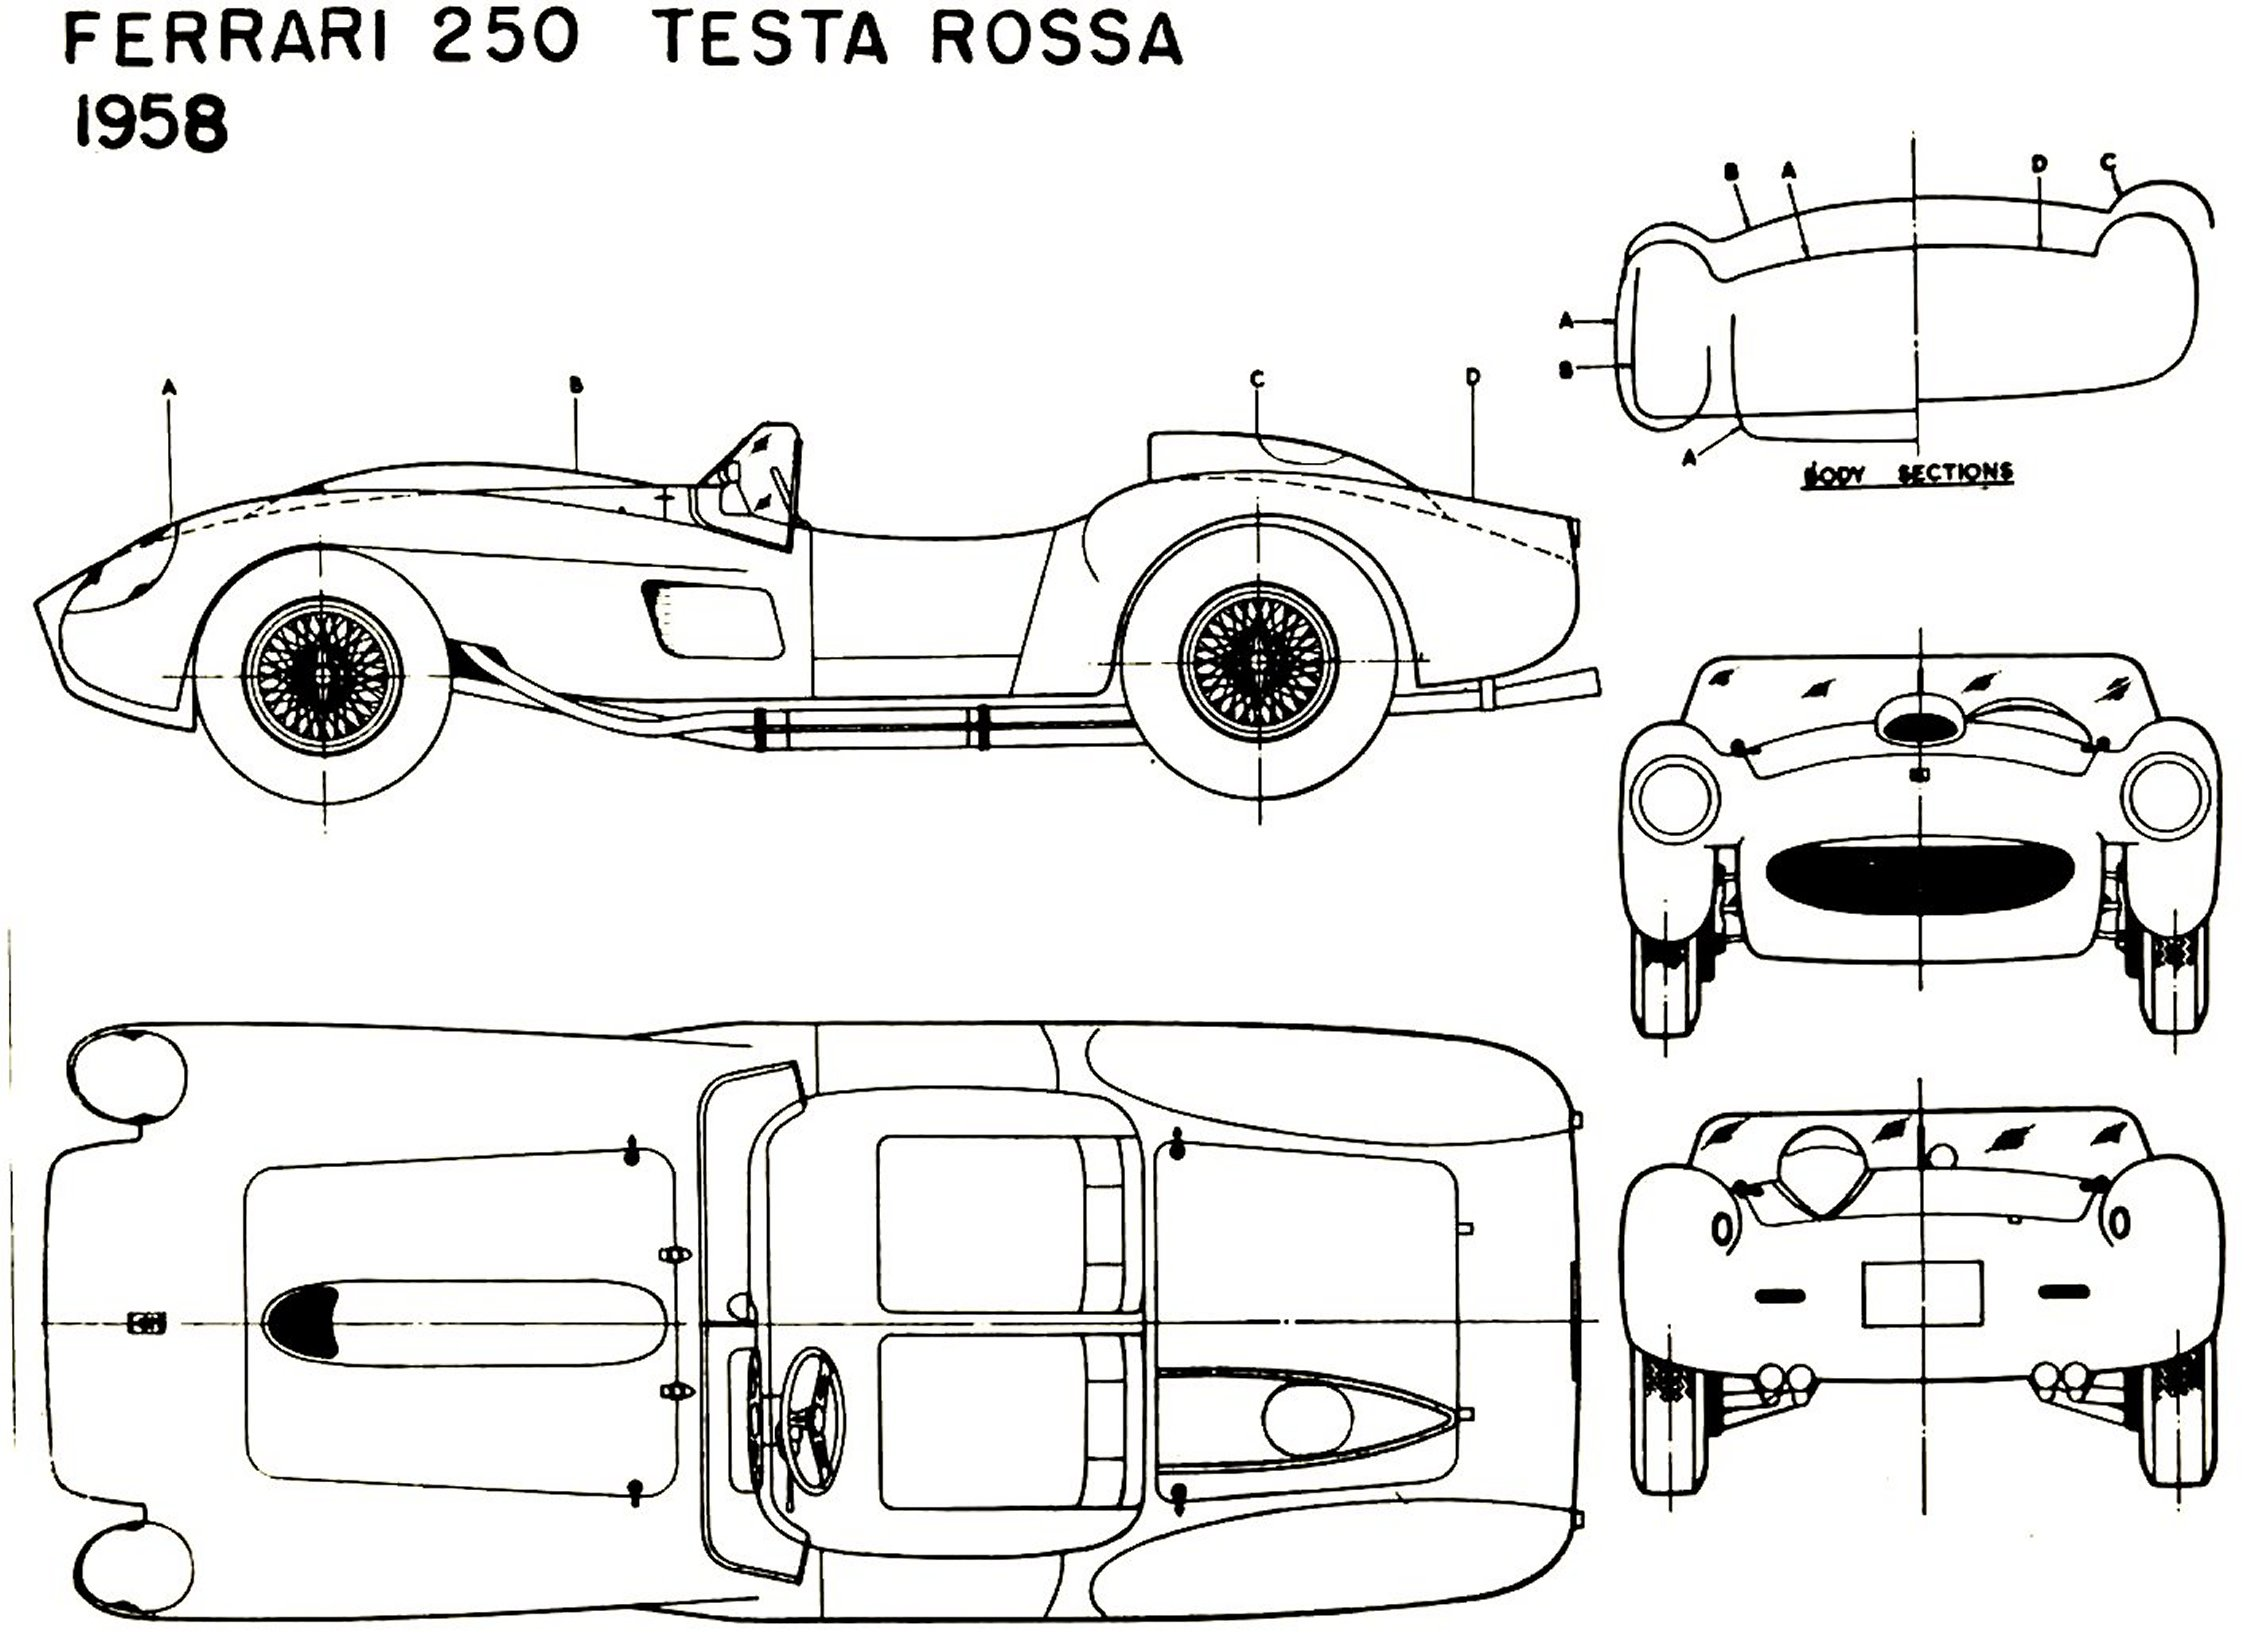 SearchResults moreover Ford Explorer Sport Trac besides PT7KpnEac together with Ferrari 250 Testarossa 1958 also 2008 Bmw Headlight Embly Diagram. on dodge roadster